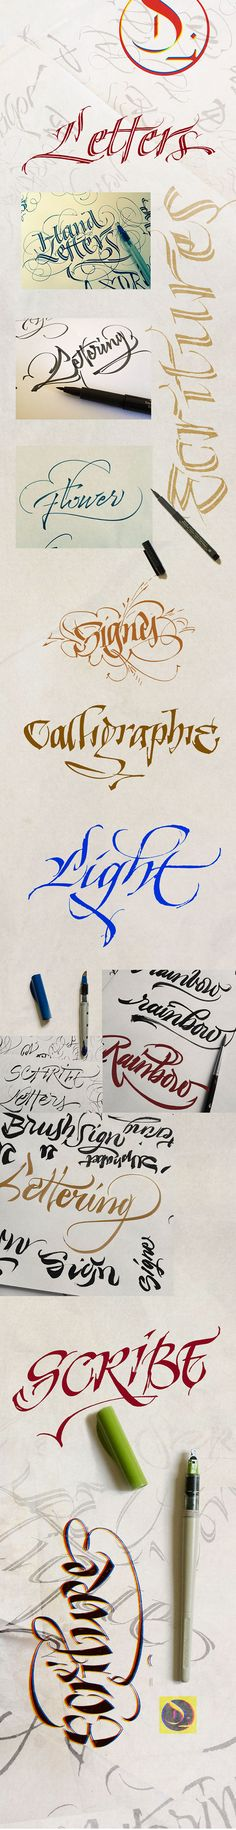 Letters on Behance